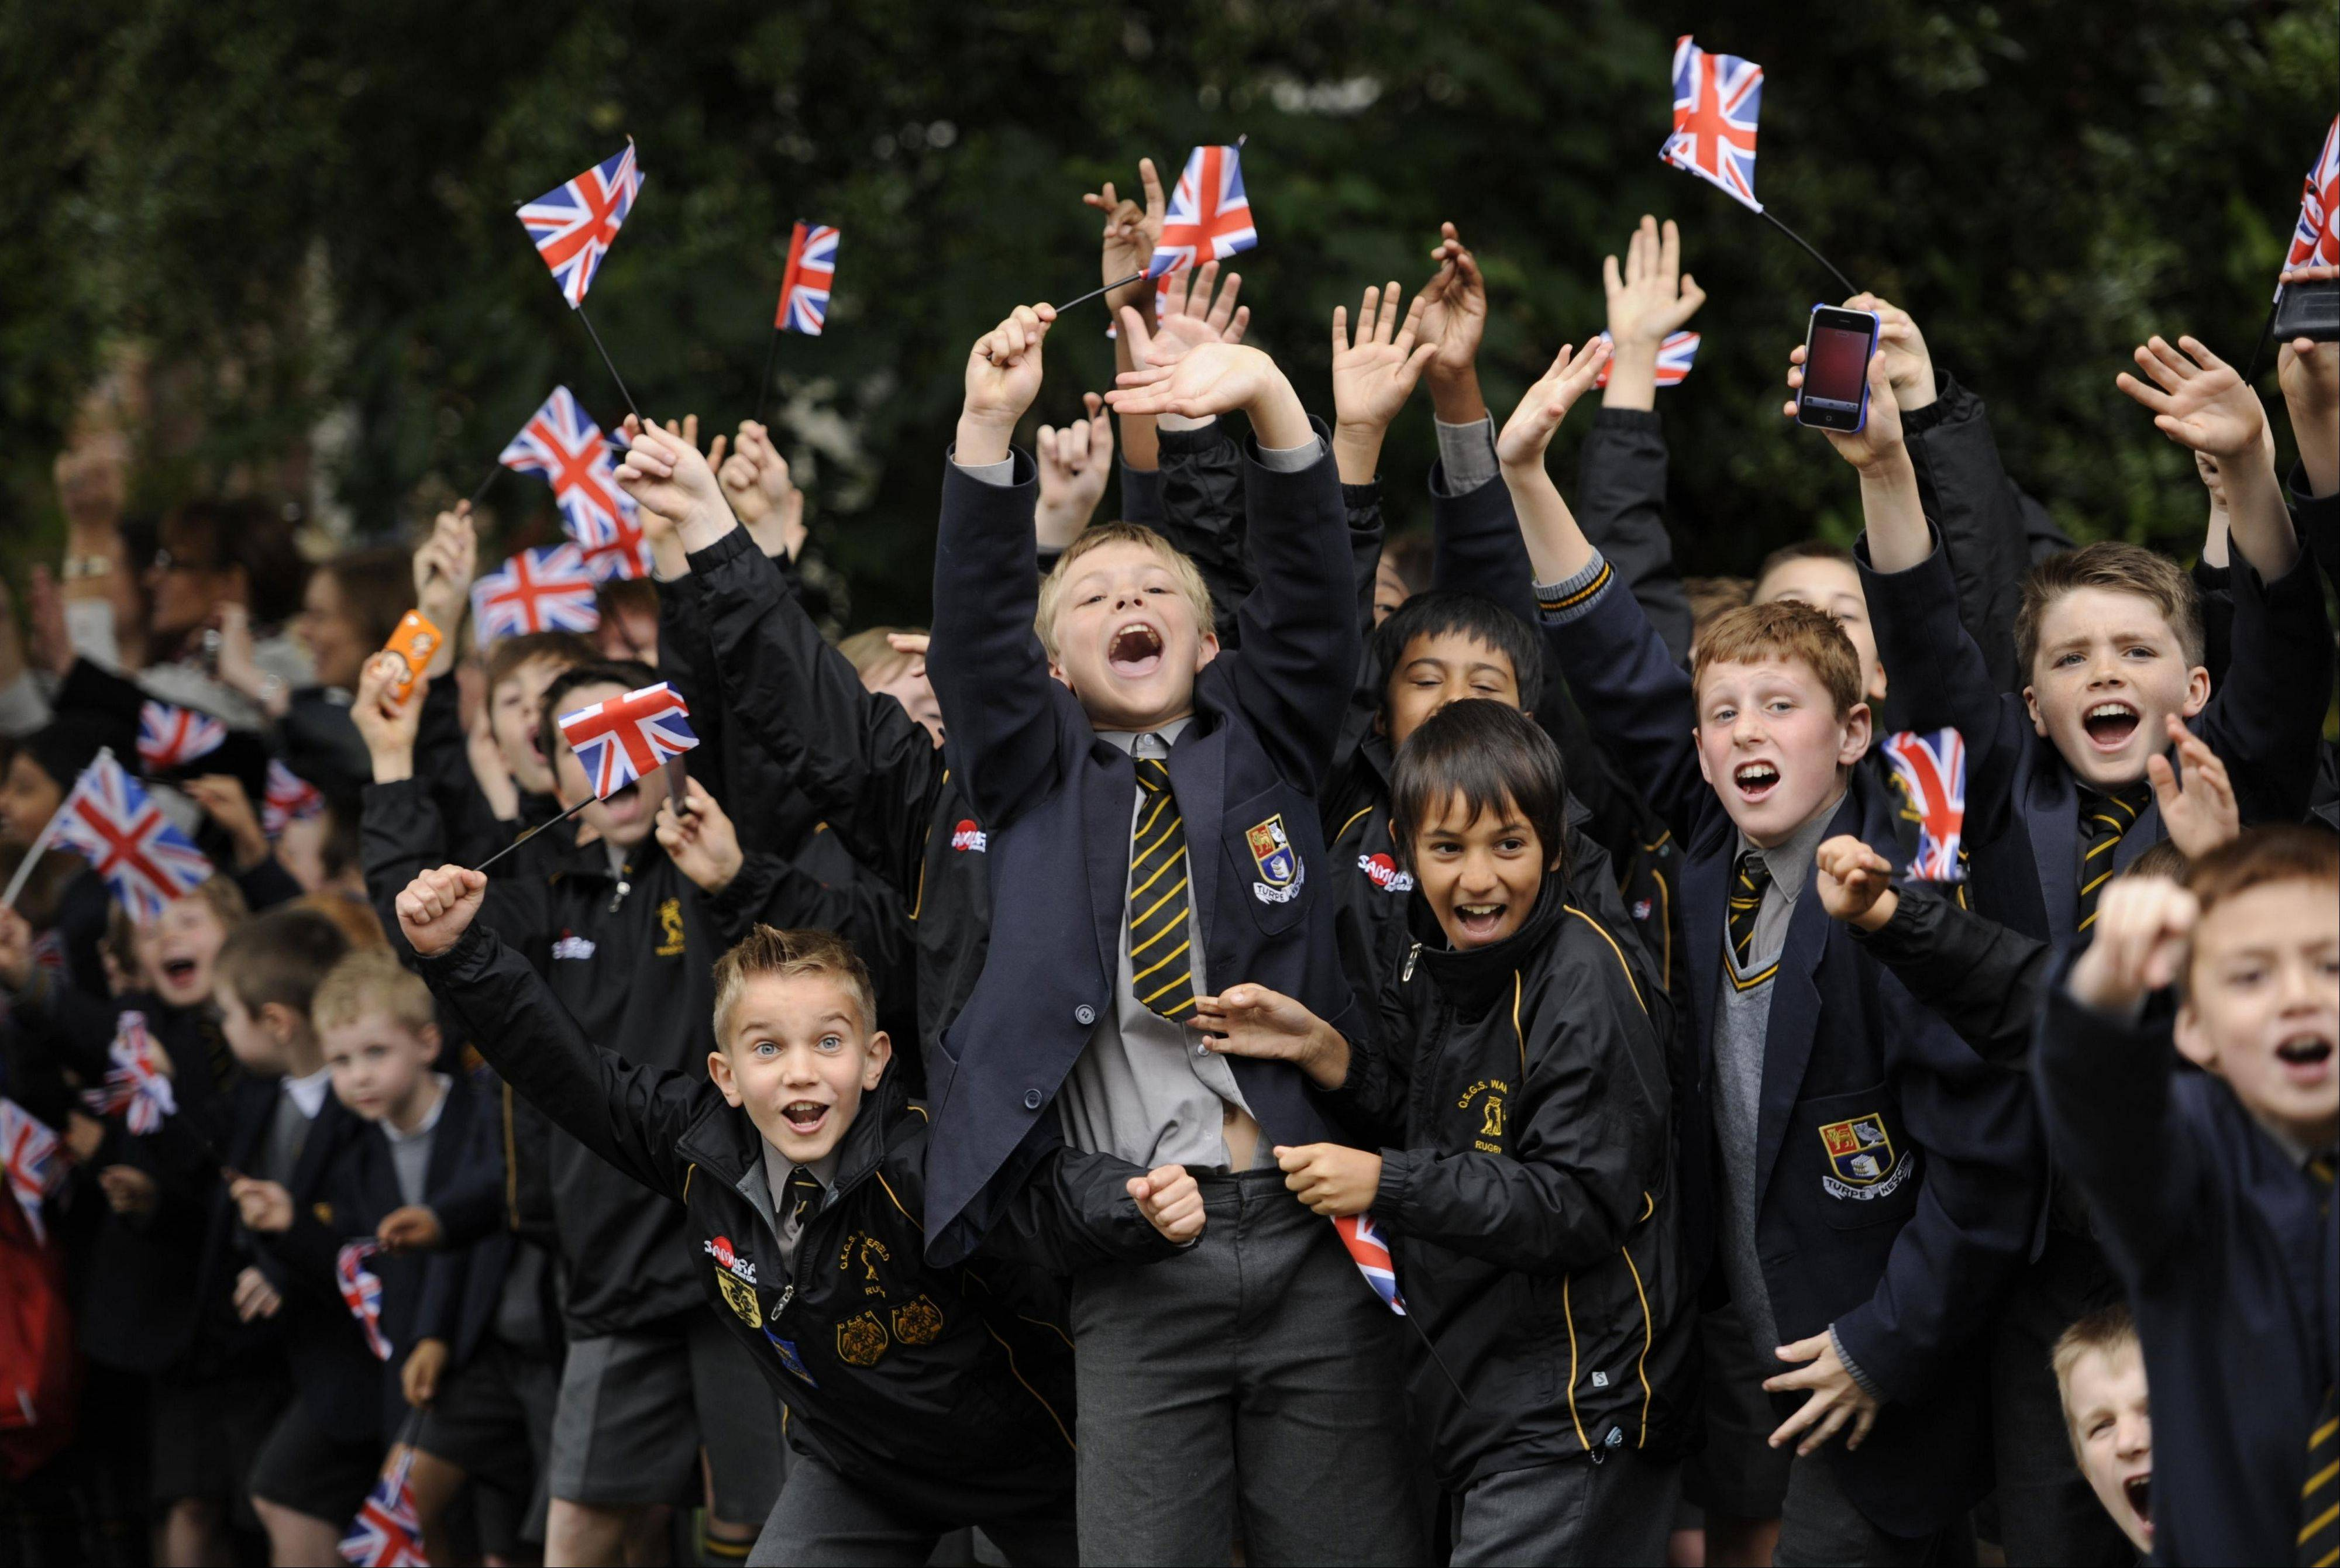 Local schoolchildren wave Union Jack flags as they cheer on the torchbearers in Wakefield, England.